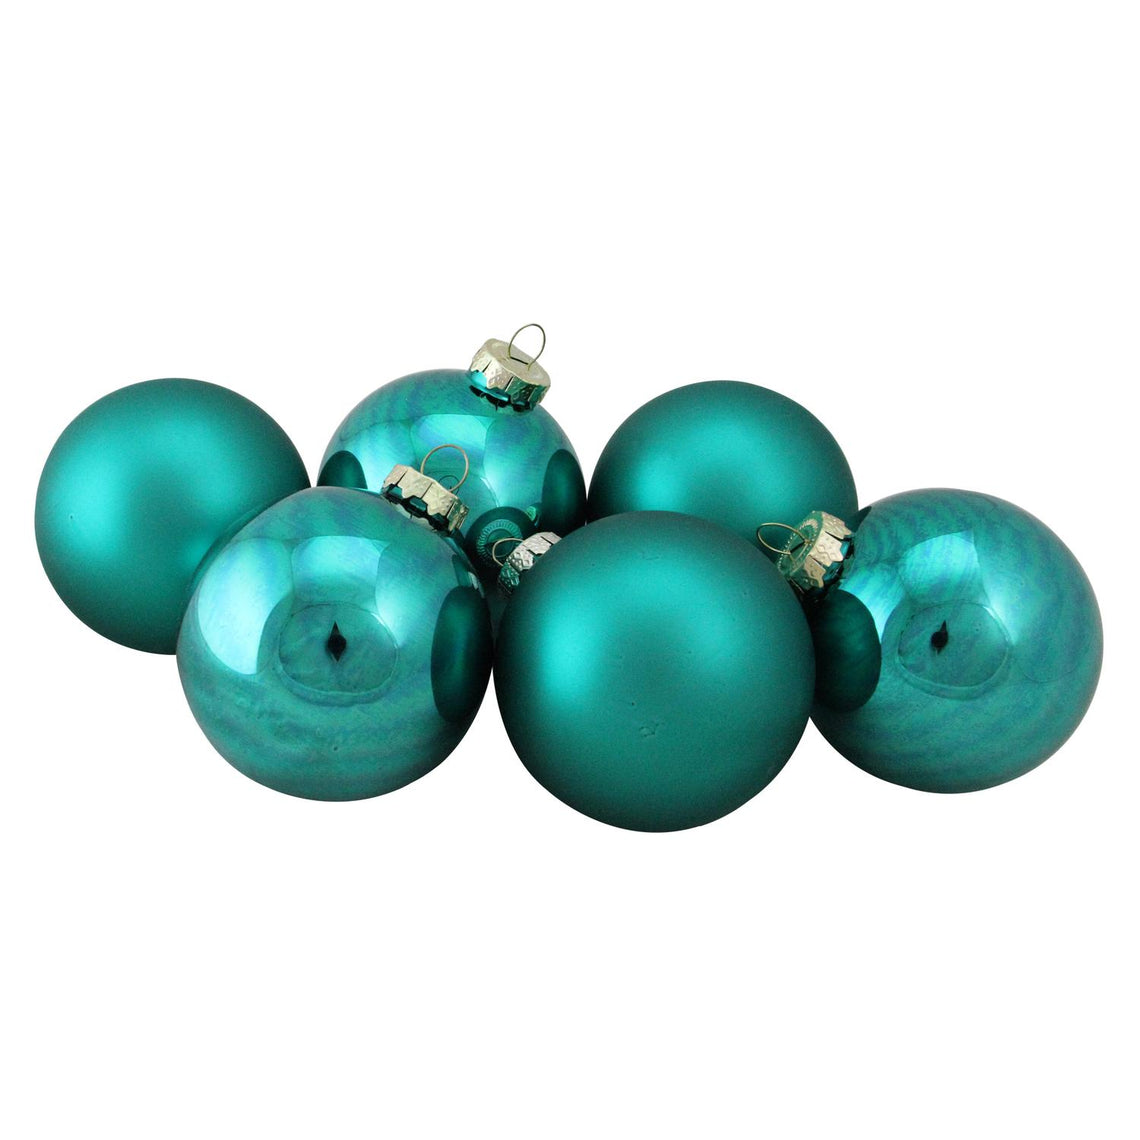 6-Piece Shiny and Matte Turquoise Blue Glass Ball Christmas Ornament Set 3.25